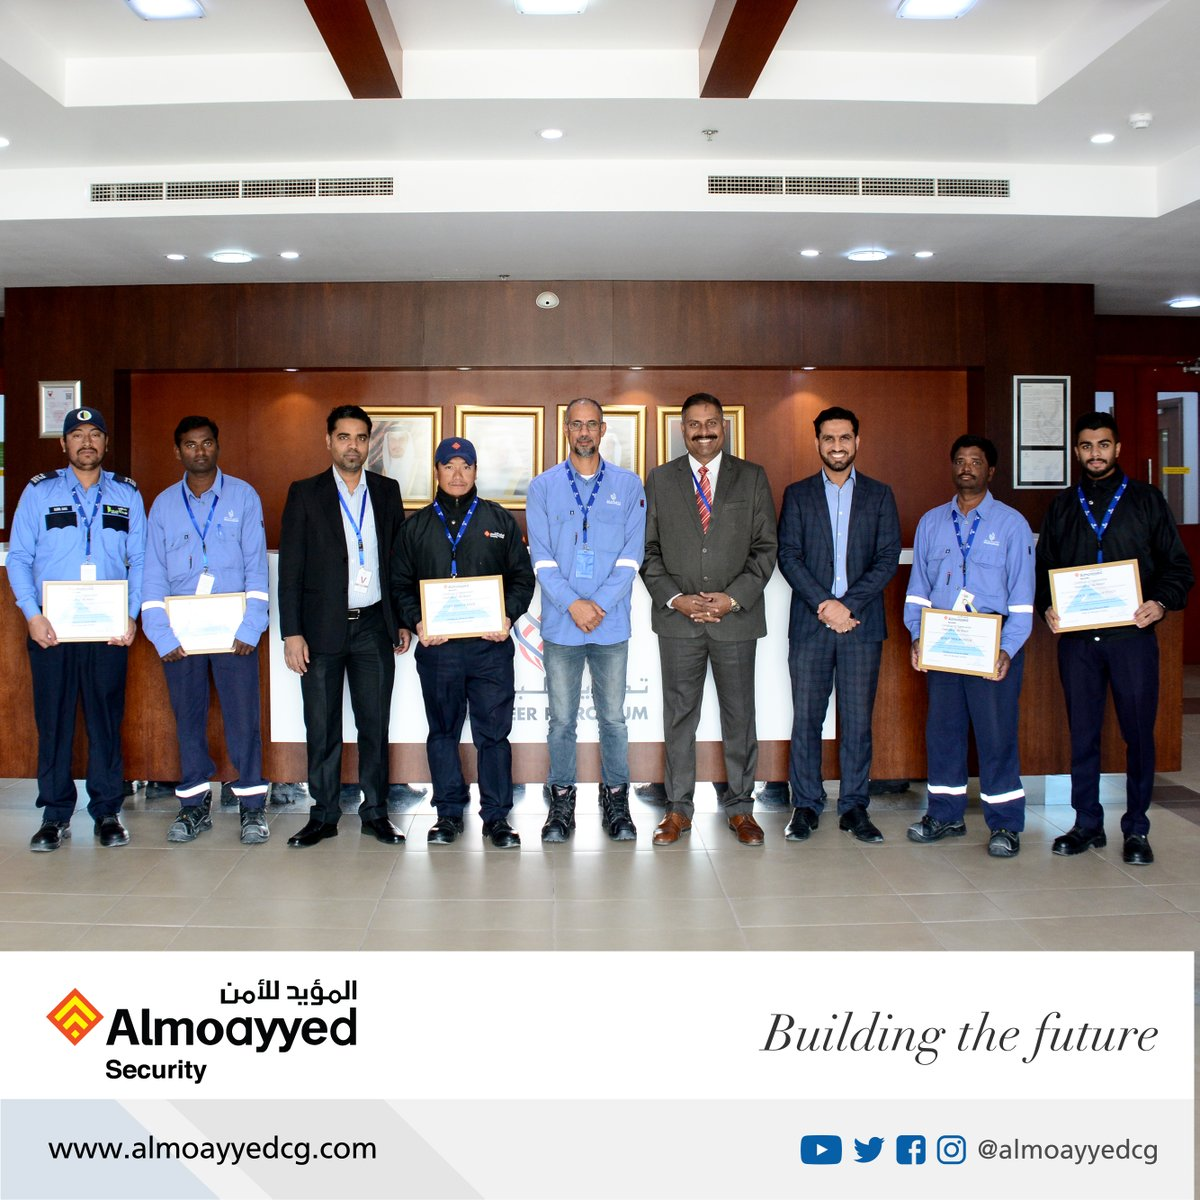 Security personnel Lila Bahadur Rana, Sunil Das, Anjayh Cheppali, Rajeshwor Munnar and Husain Ali Abdulla Yusuf who are a part of our security team at the Tatweer Petroleum project were awarded the honor of Employee of the month for their outstanding performance. #bahrain ⁣⁣ https://t.co/kODZO5j3yz